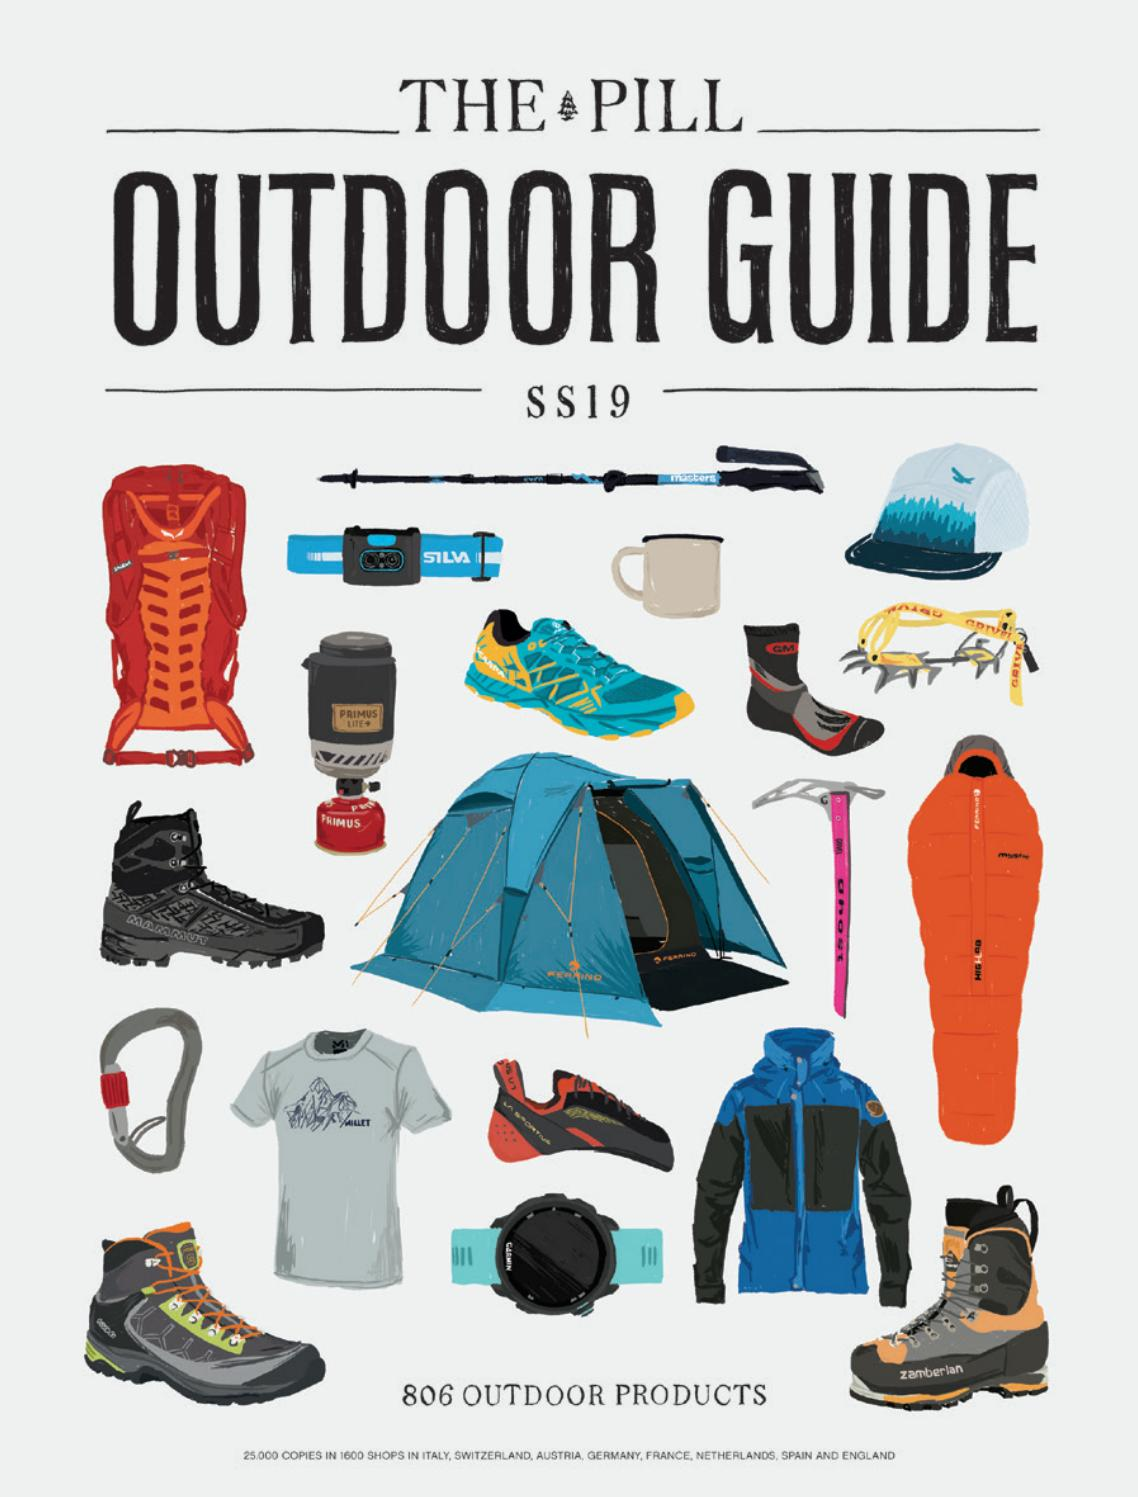 780f0efbaccd8 The Pill Outdoor Guide SS19 En by Hand Communication - issuu